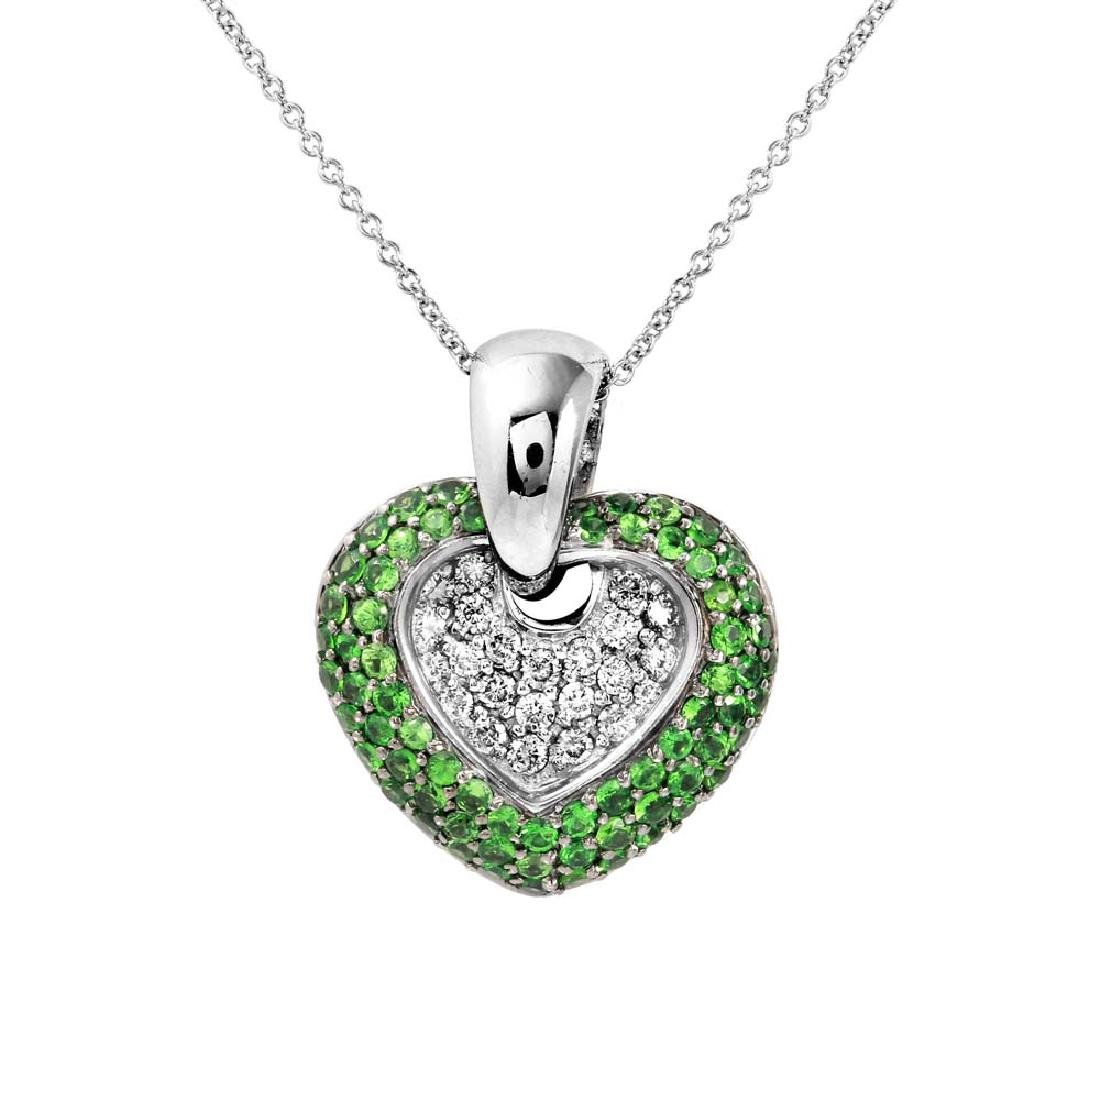 Genuine 1.63 TCW 14K White Gold Ladies Necklace